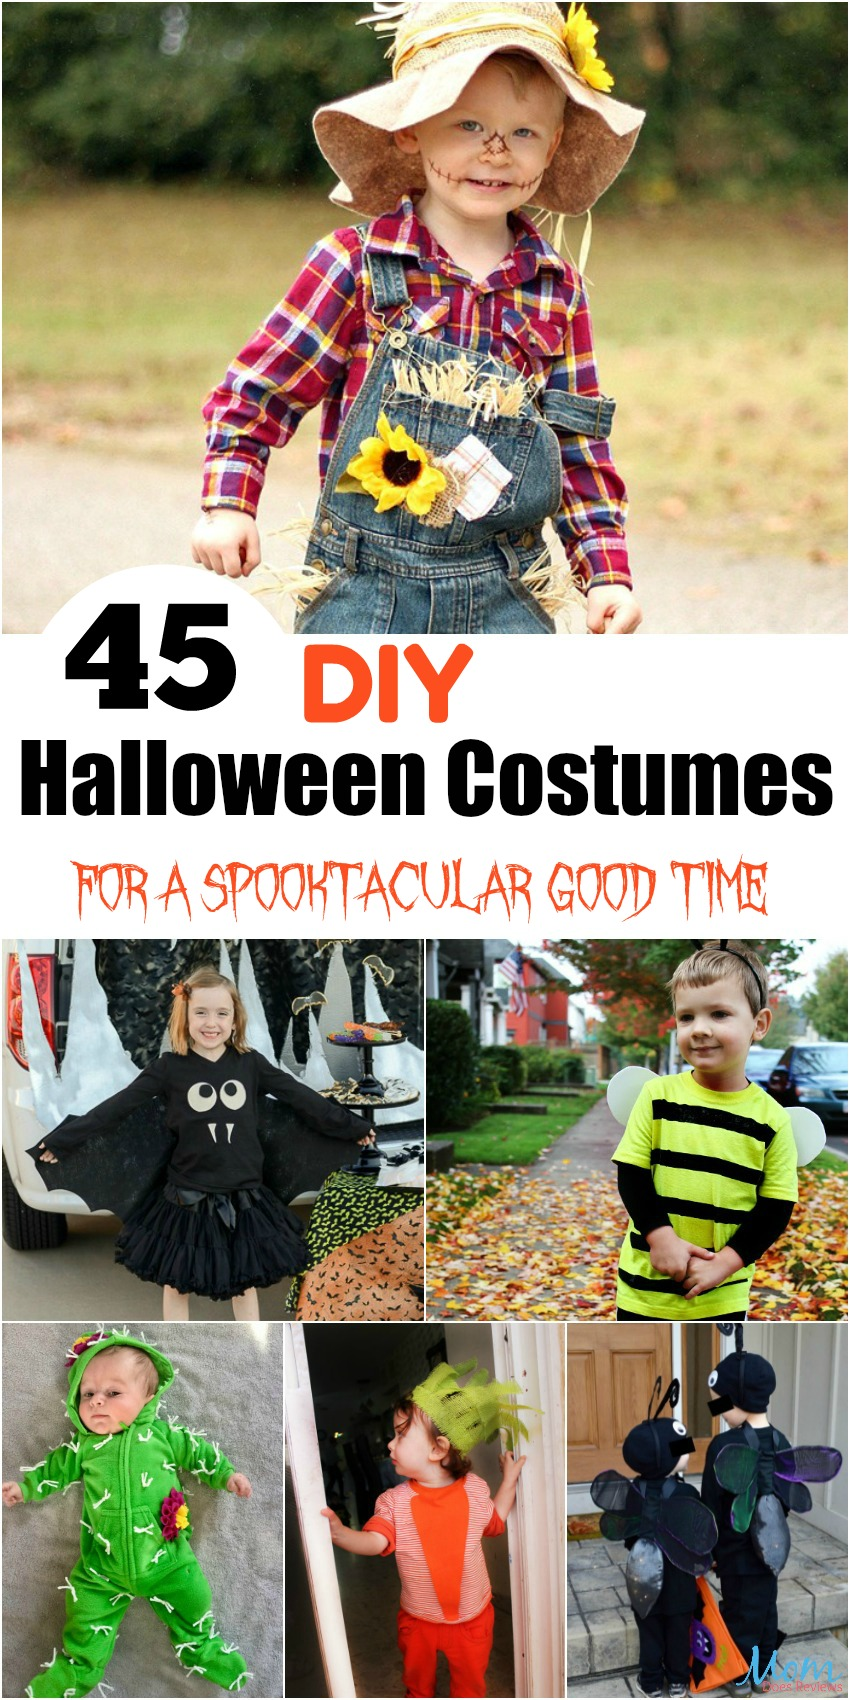 45 DIY Halloween Costumes for a Spooktacular Good Time